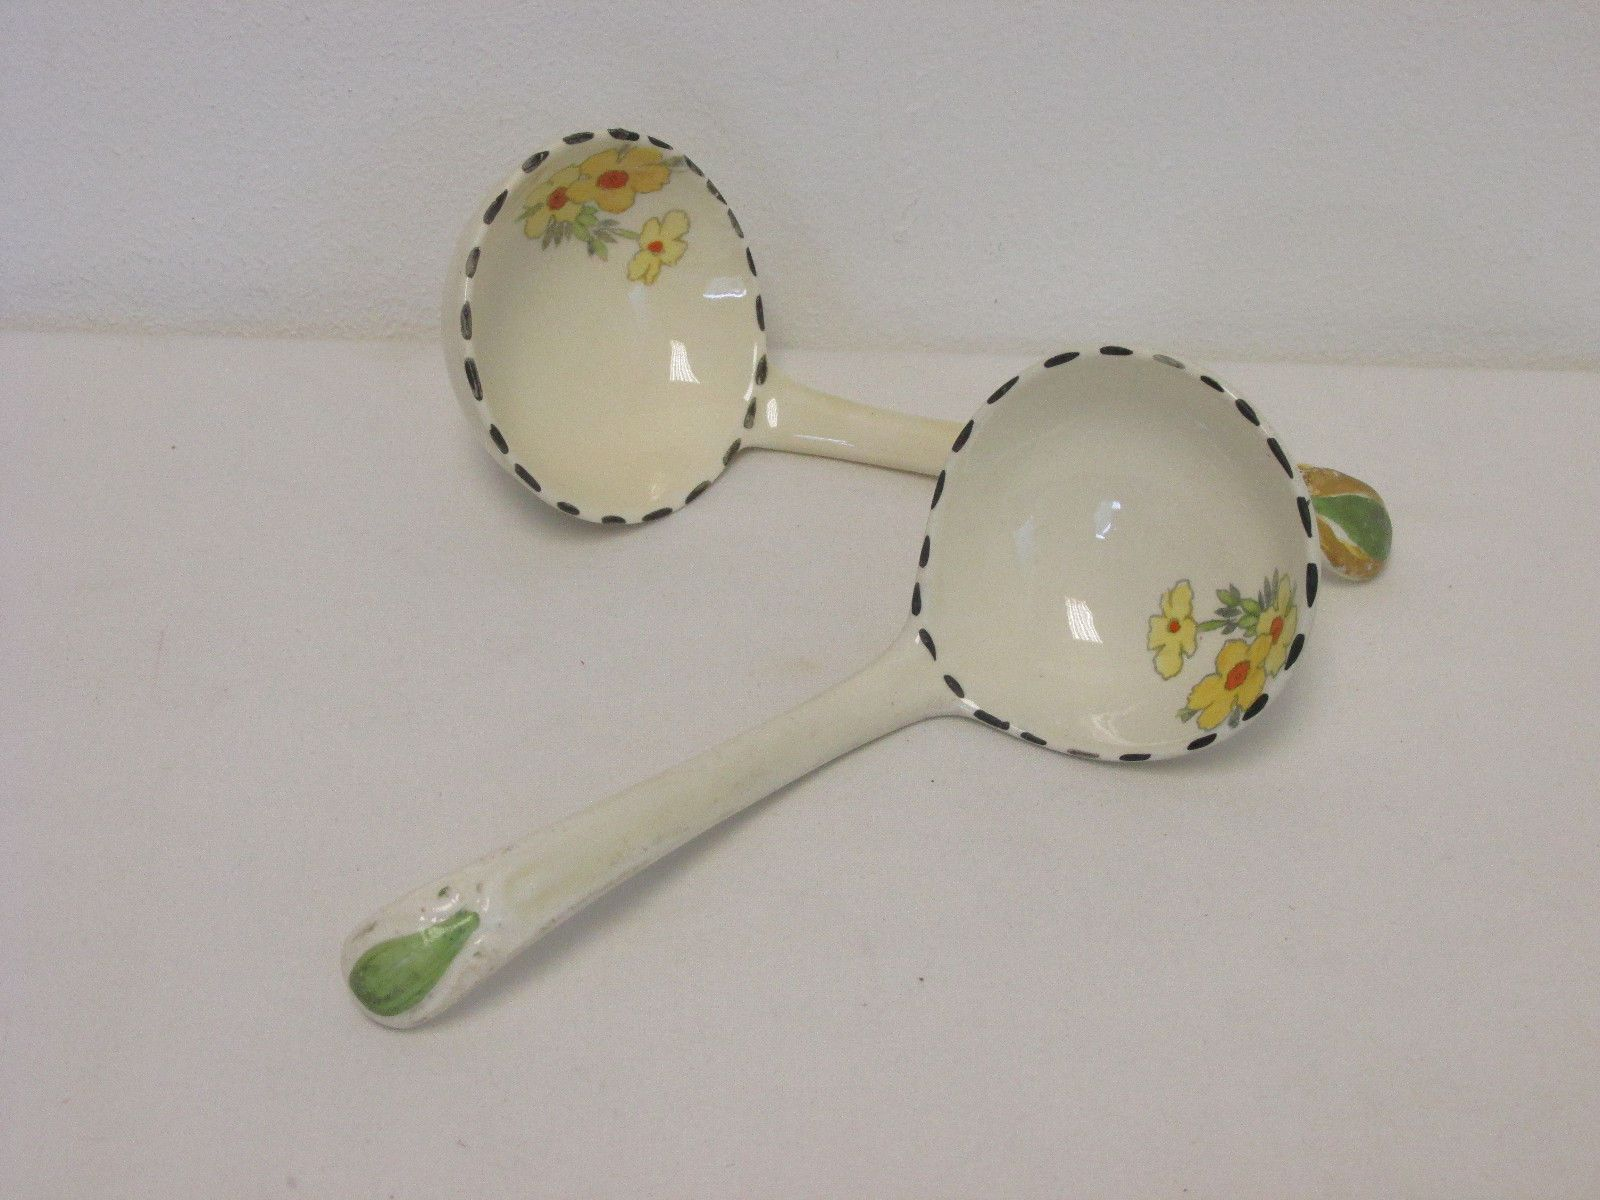 Vintage 1930s Burleigh Ware Golden Days Pair Of Ceramic Ladles Or Serving Spoons Ebay Aug 2017 Gbp20 Bin Serving Spoons Vintage 1930s Vintage